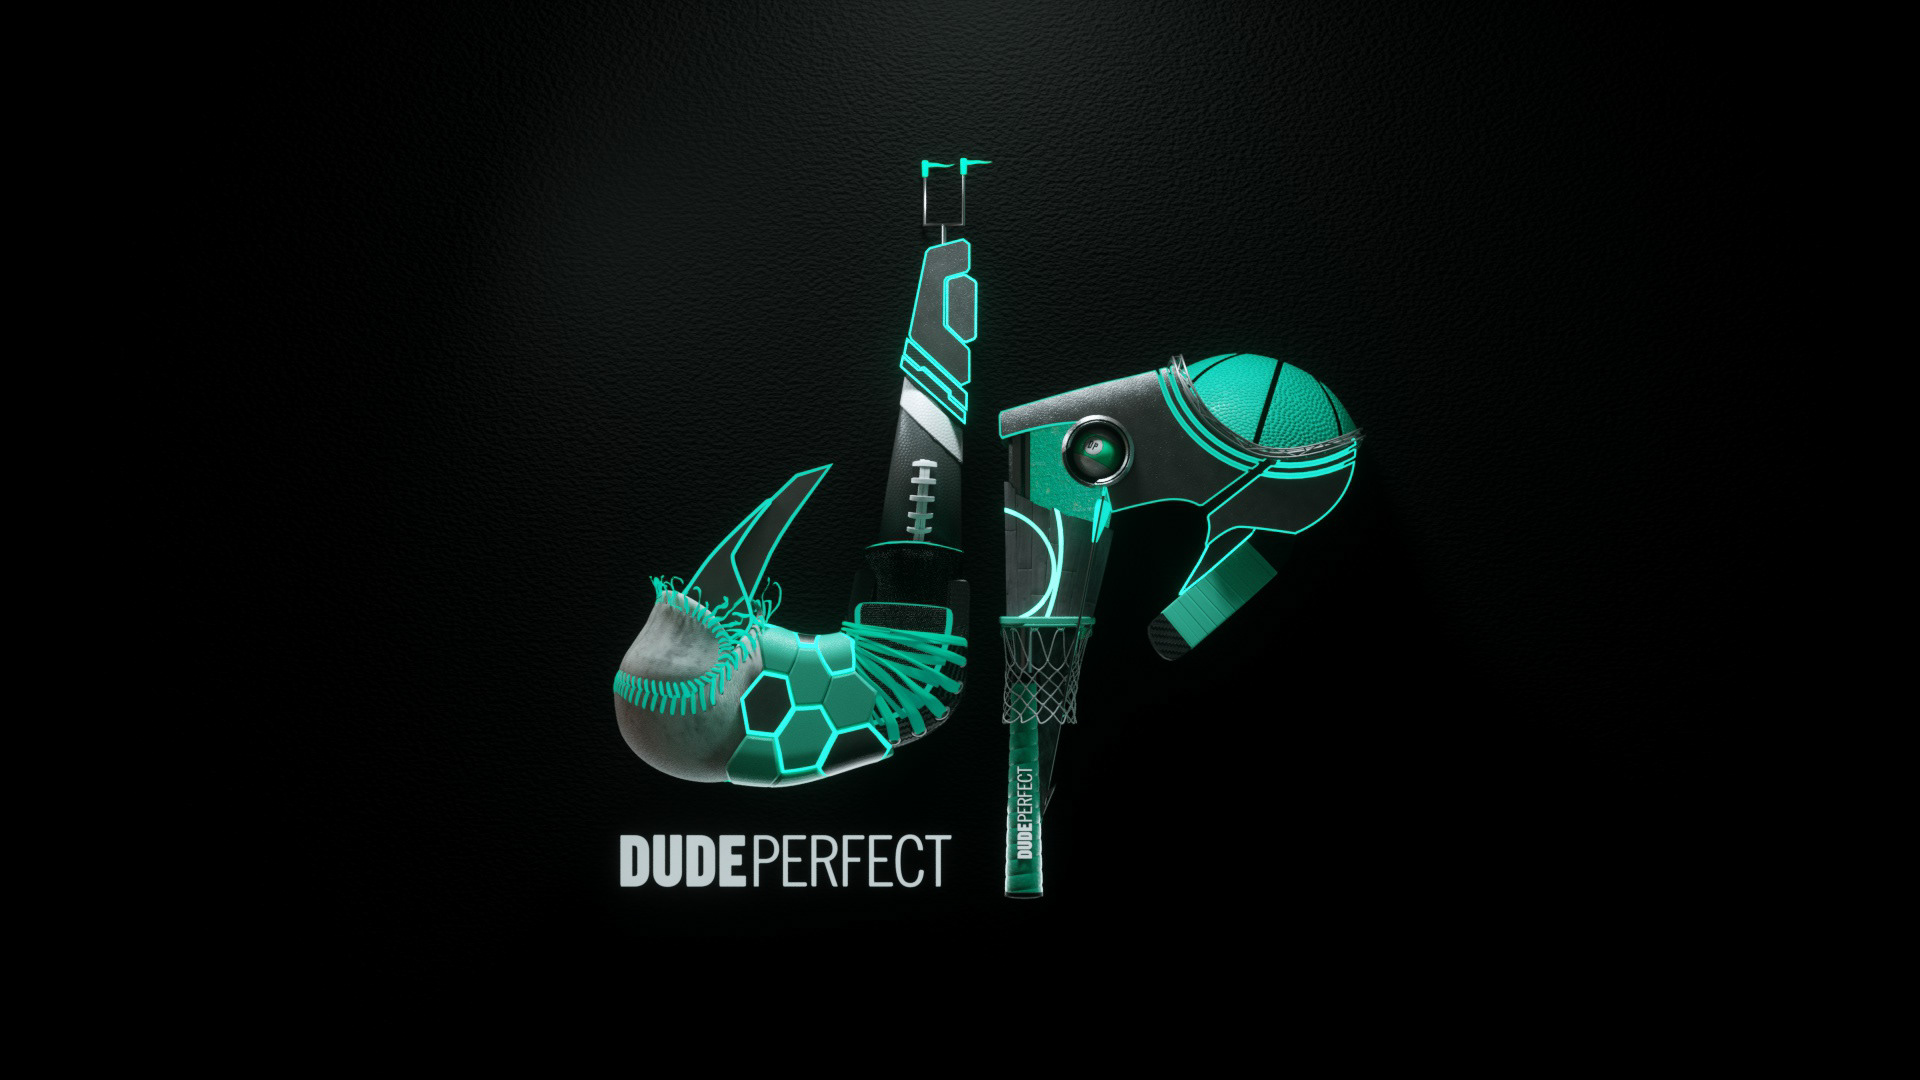 Tap To Unmute - Dude Perfect Logo , HD Wallpaper & Backgrounds